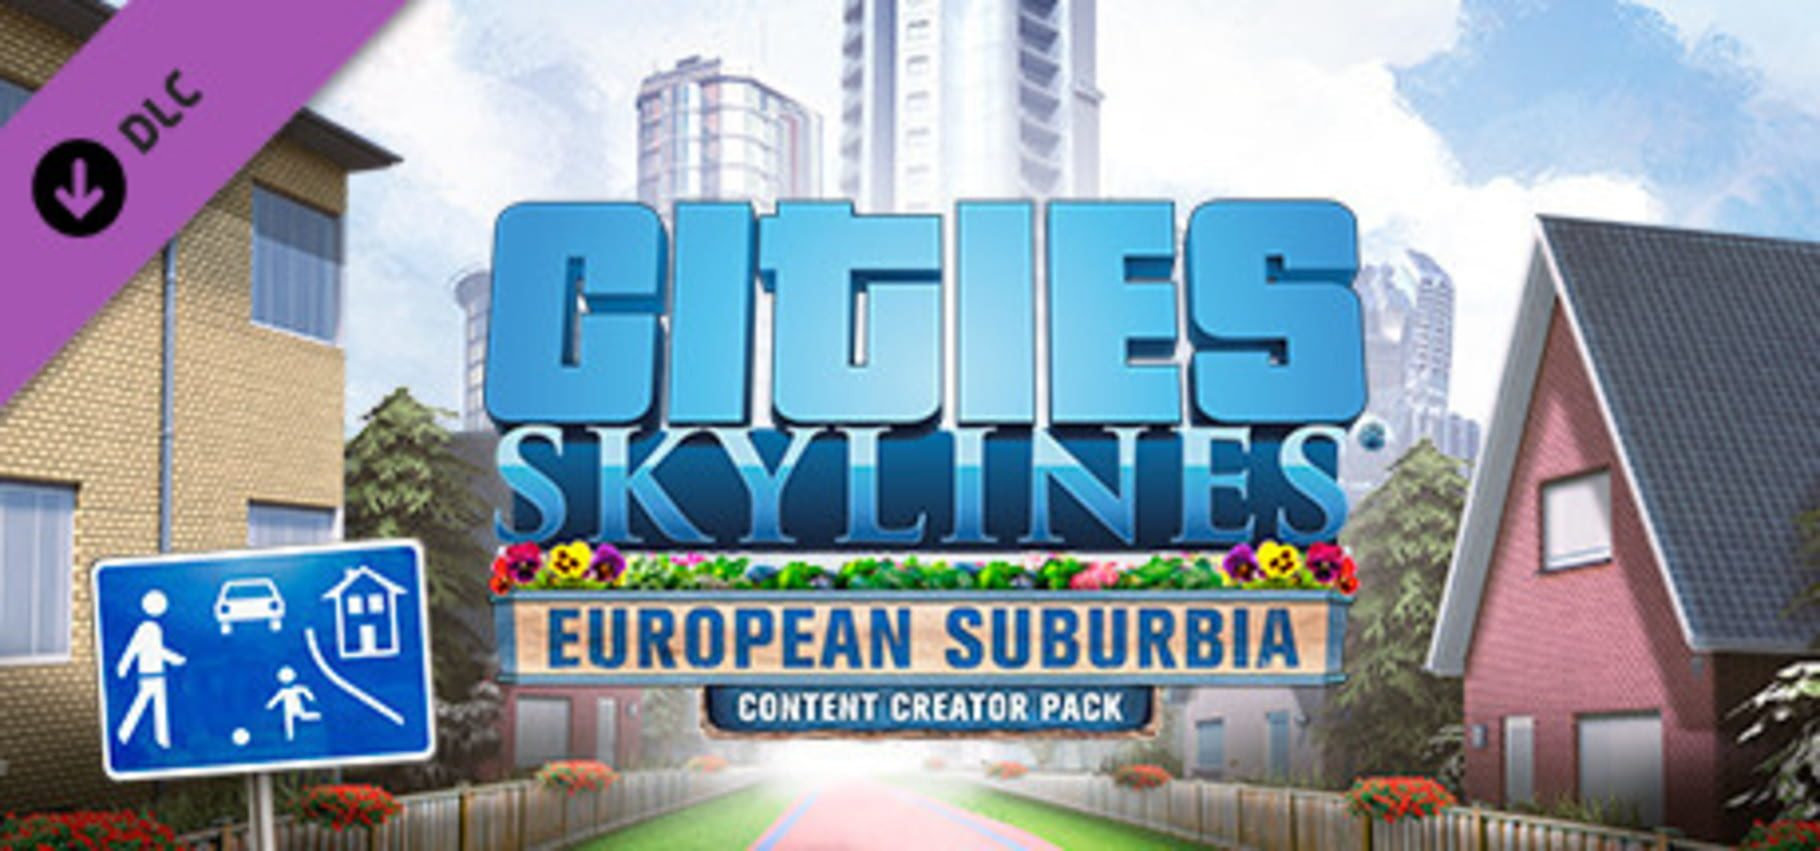 buy Cities: Skylines - Content Creator Pack: European Suburbia cd key for xbox platform